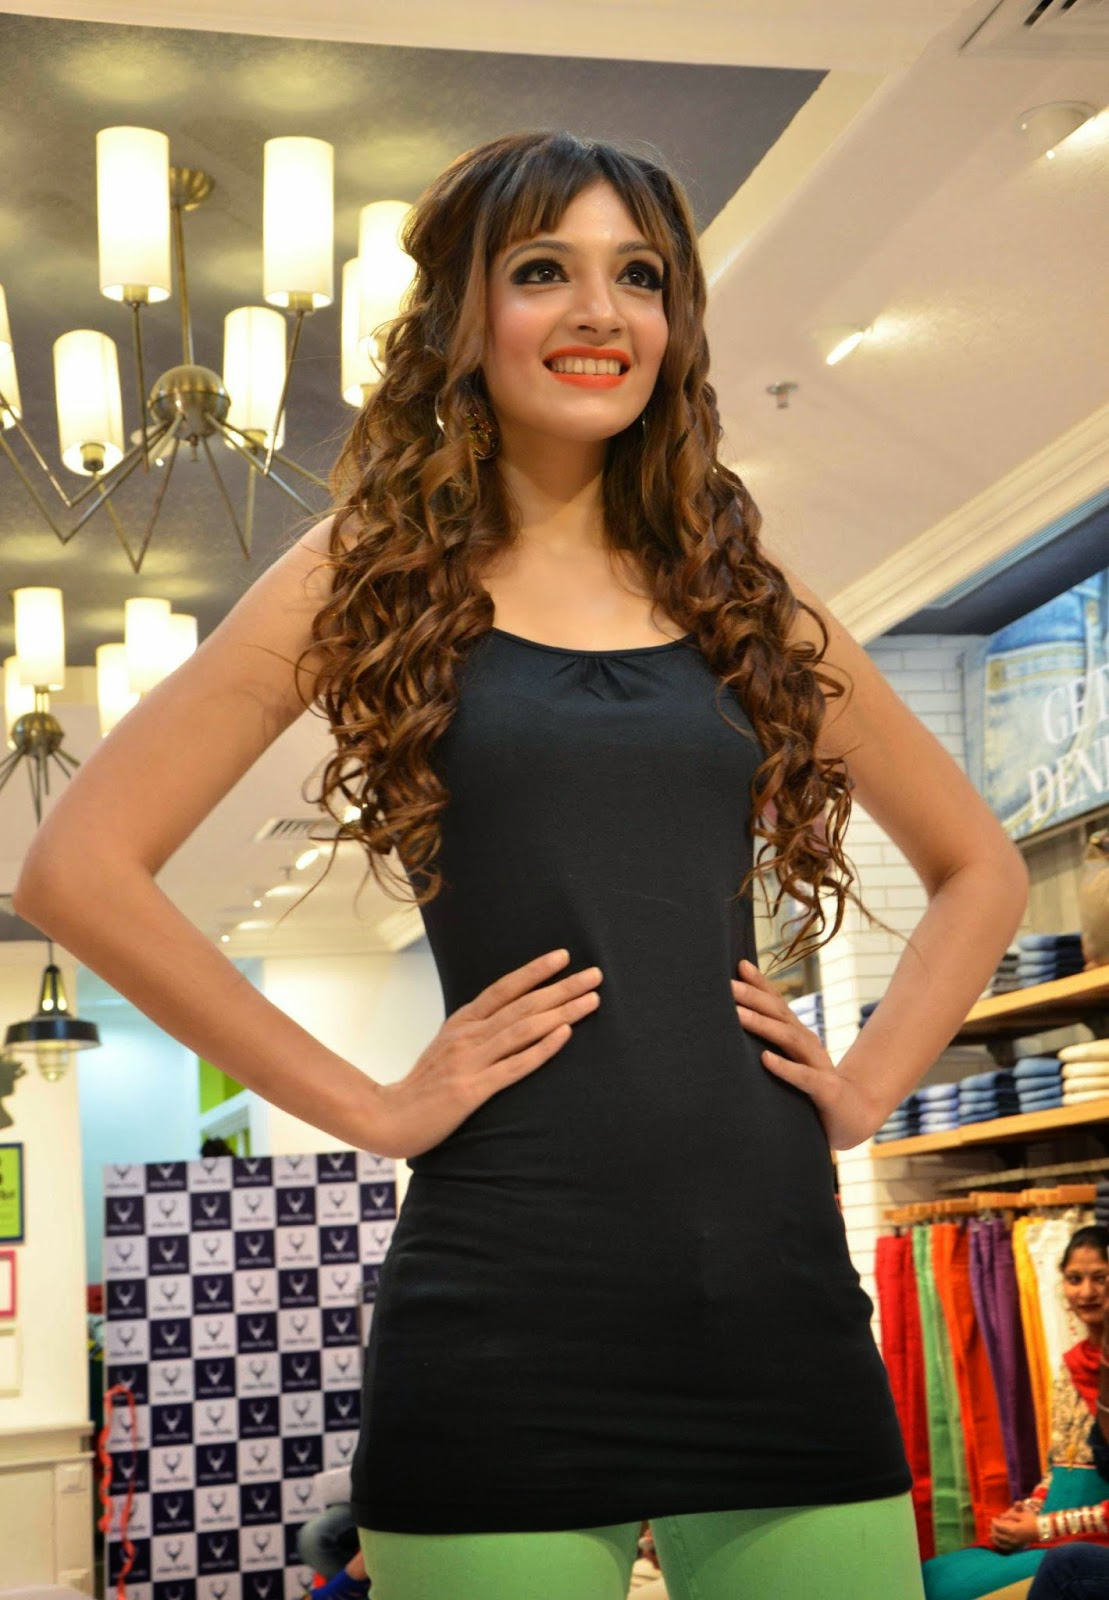 High Quality Bollywood Celebrity Pictures: Former Miss